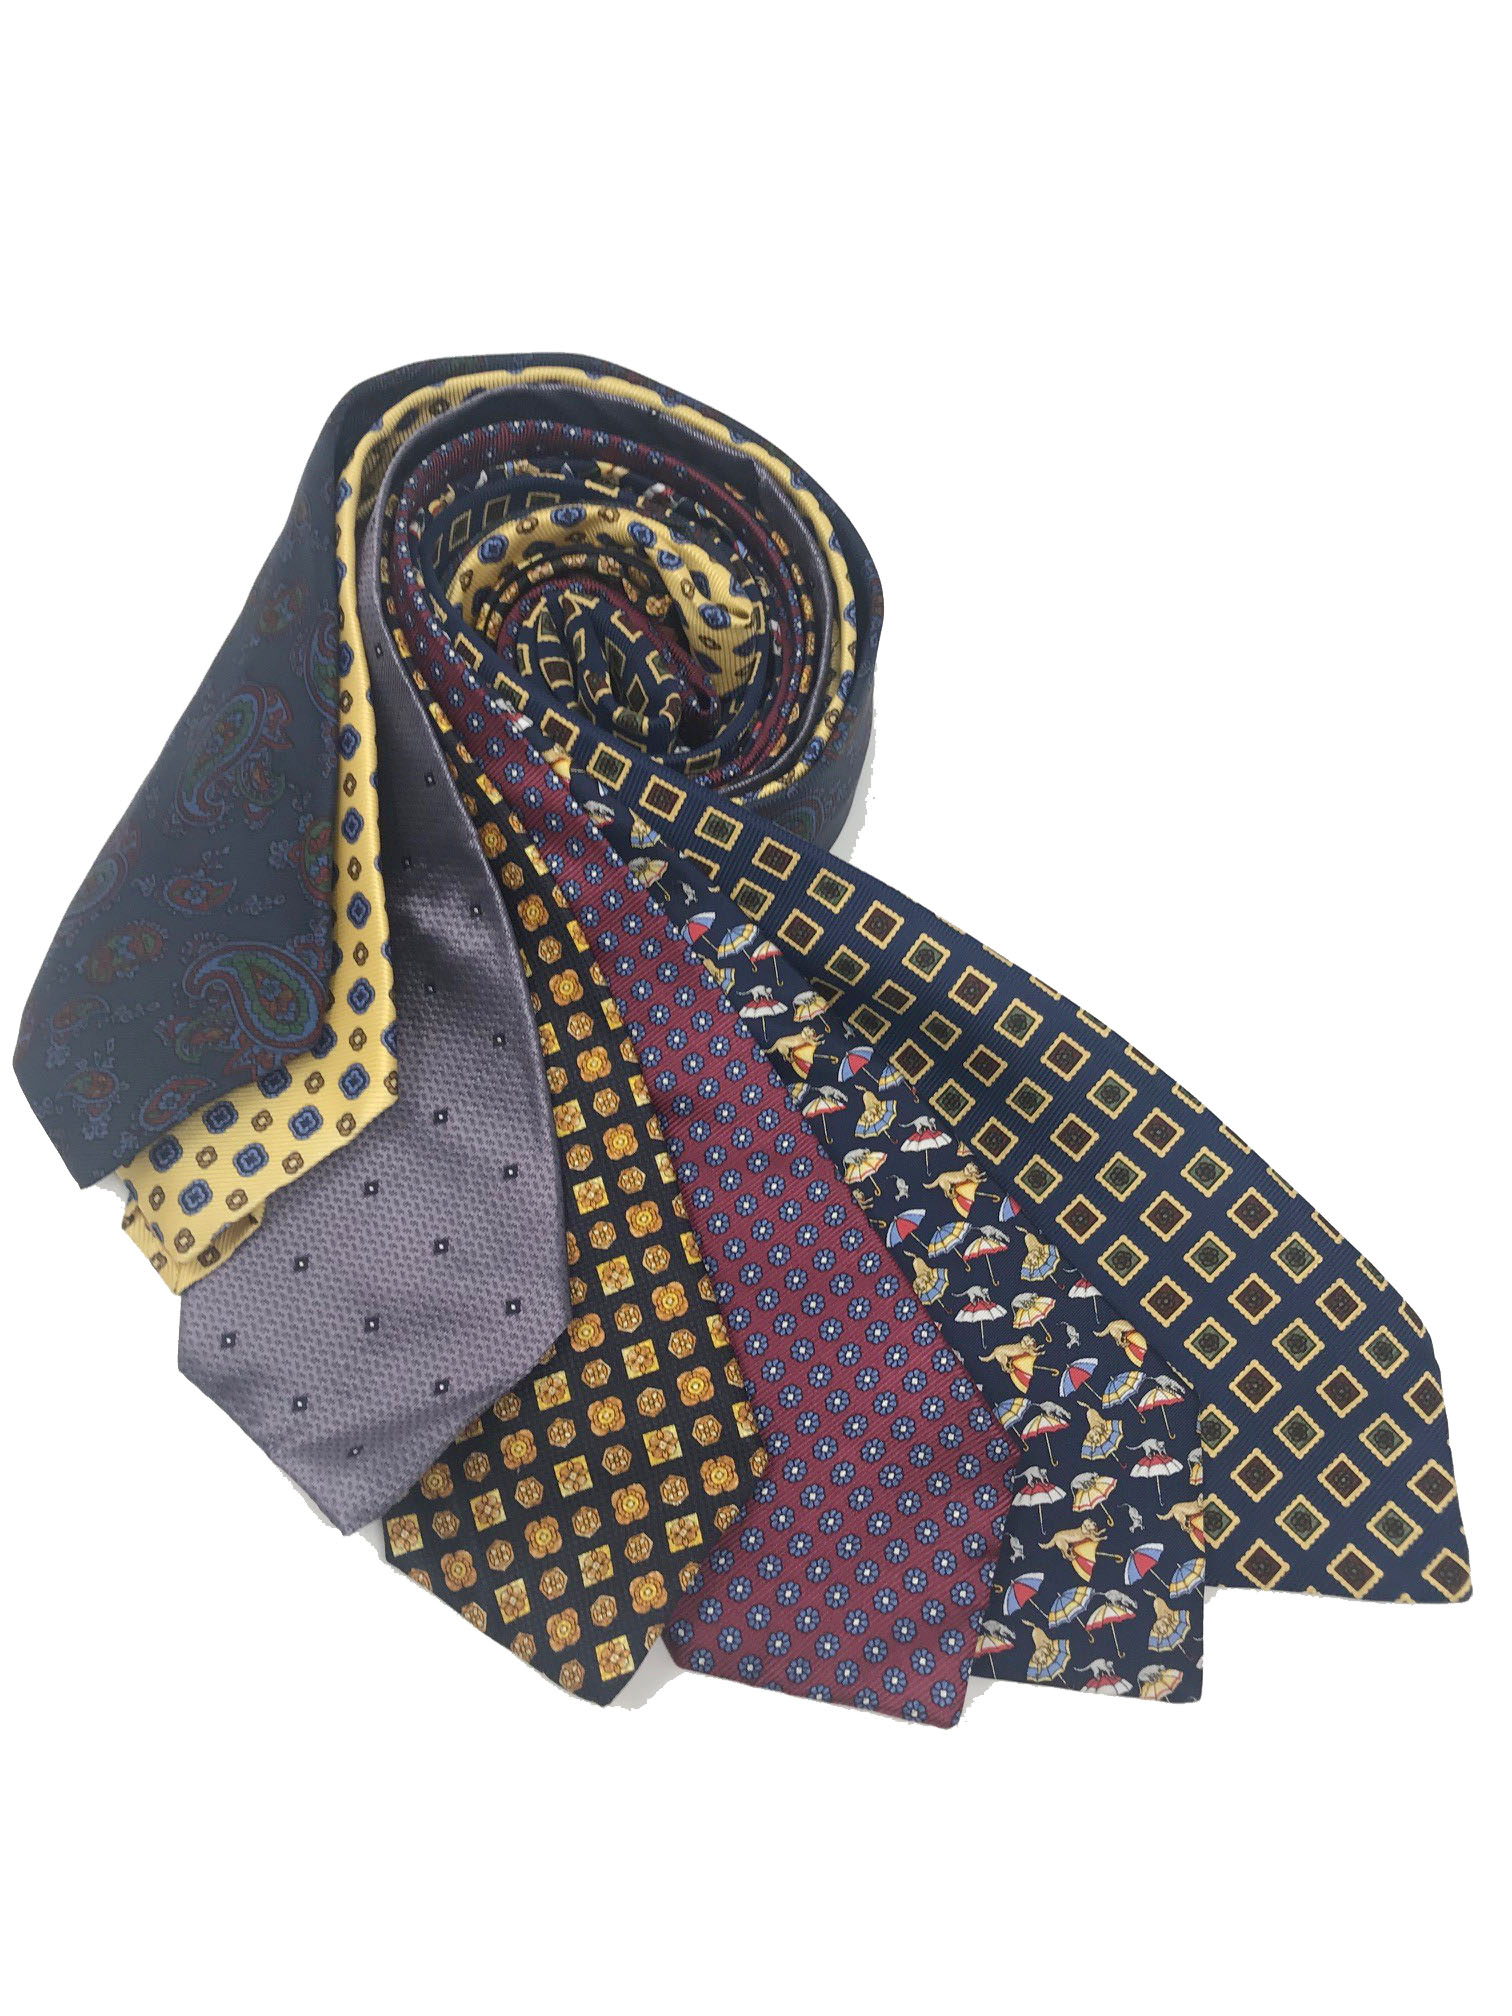 Cavenagh of London 7Piece 100% Pure Silk Ties Made in UK (702D)RRP£139.99